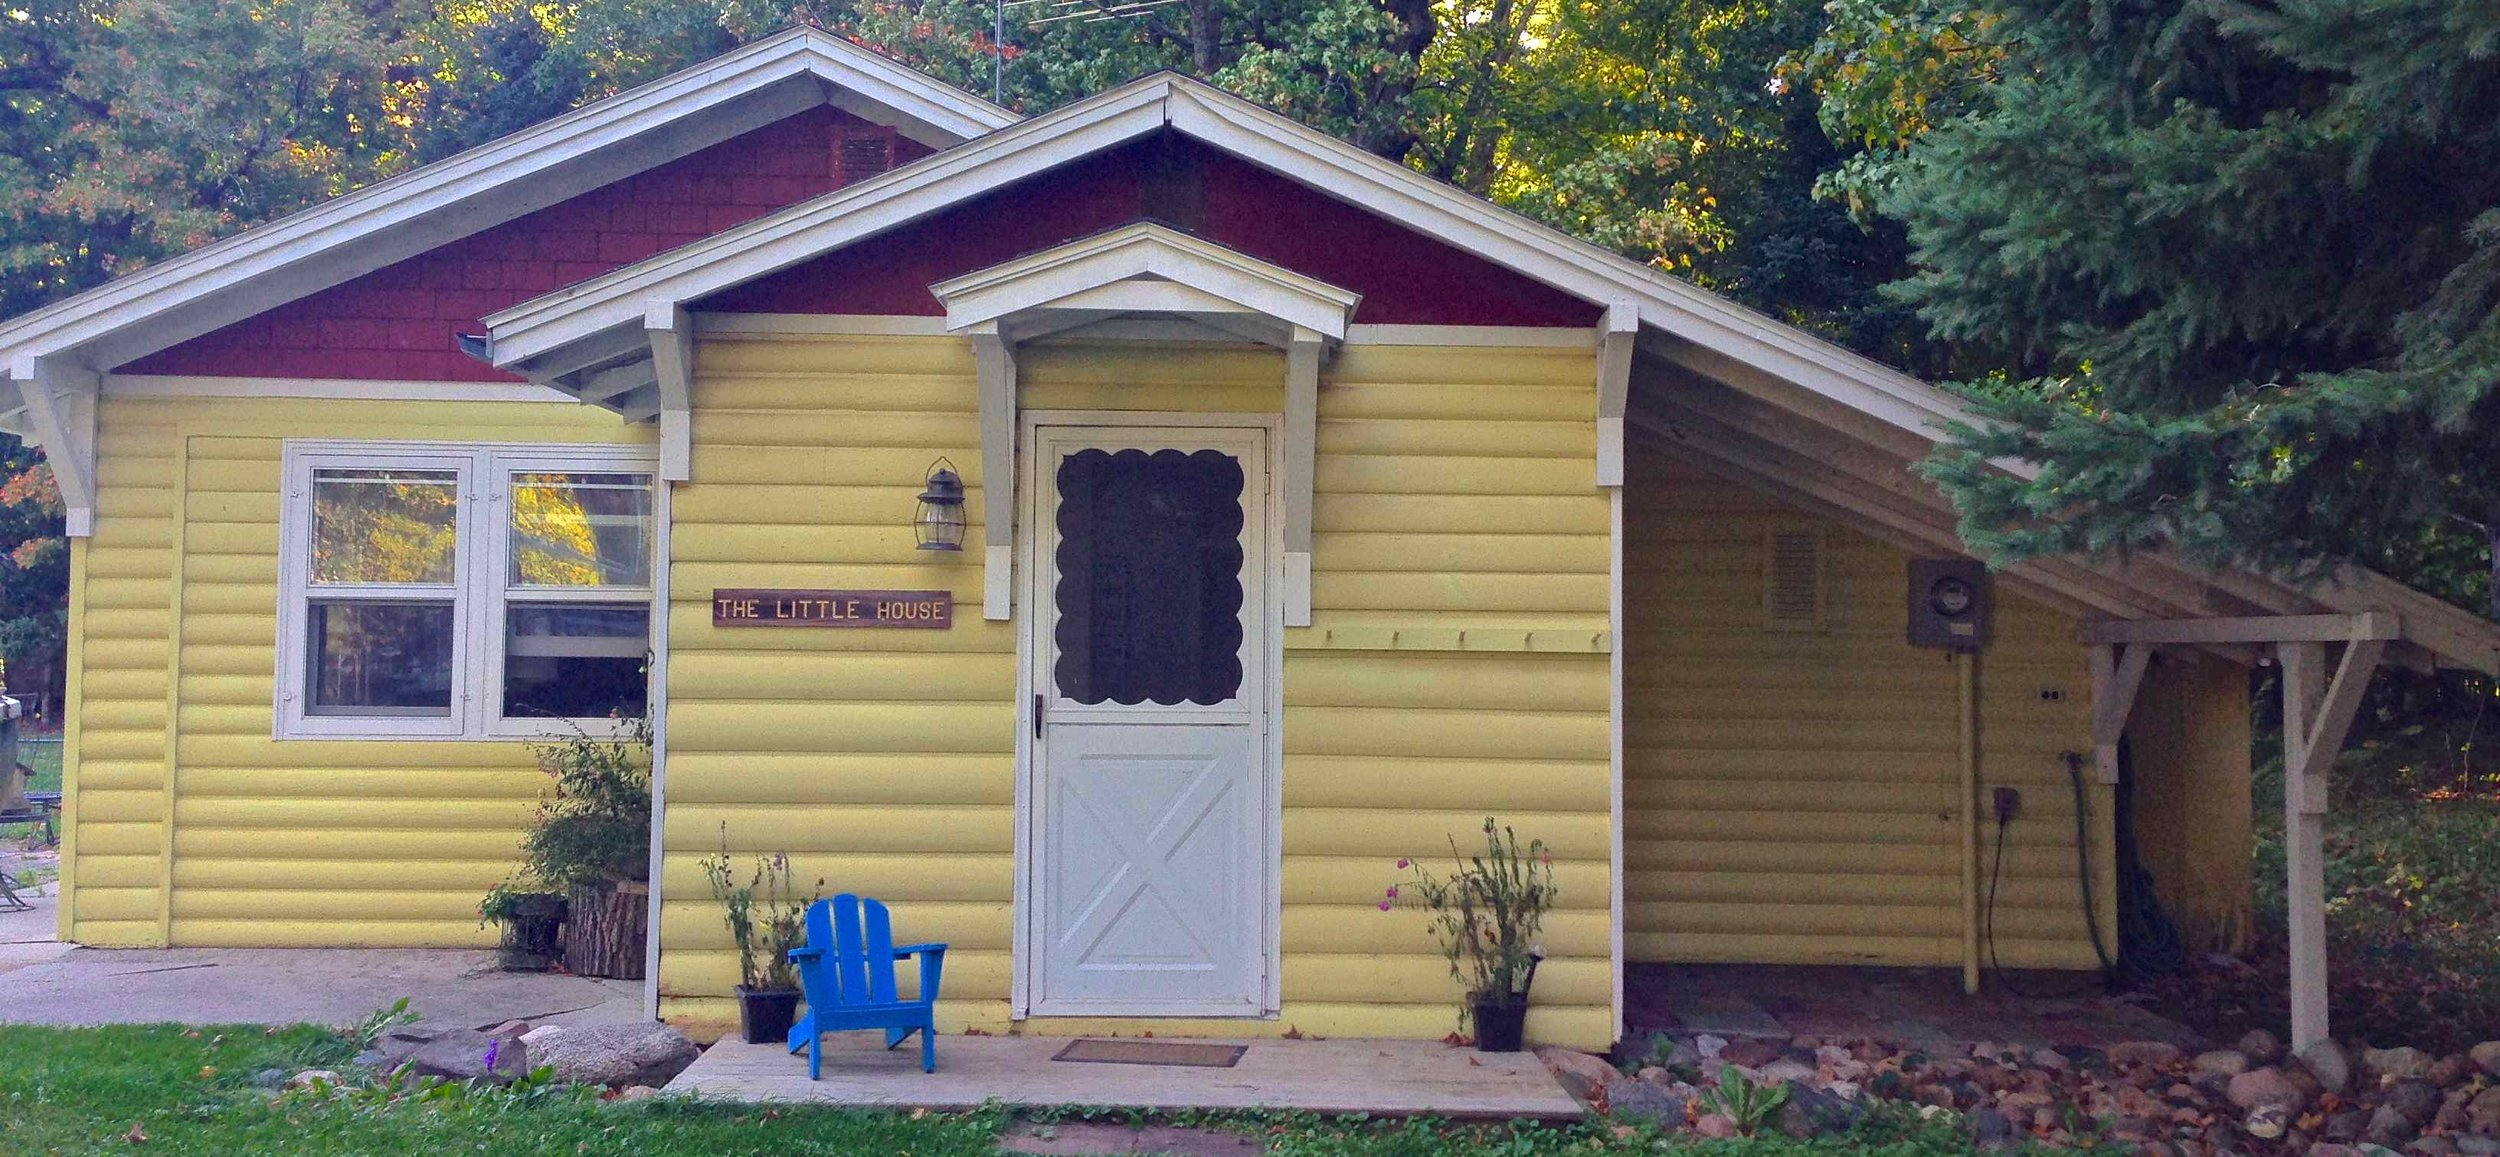 Hi there! I'm the little house front door. Ready for some fun?